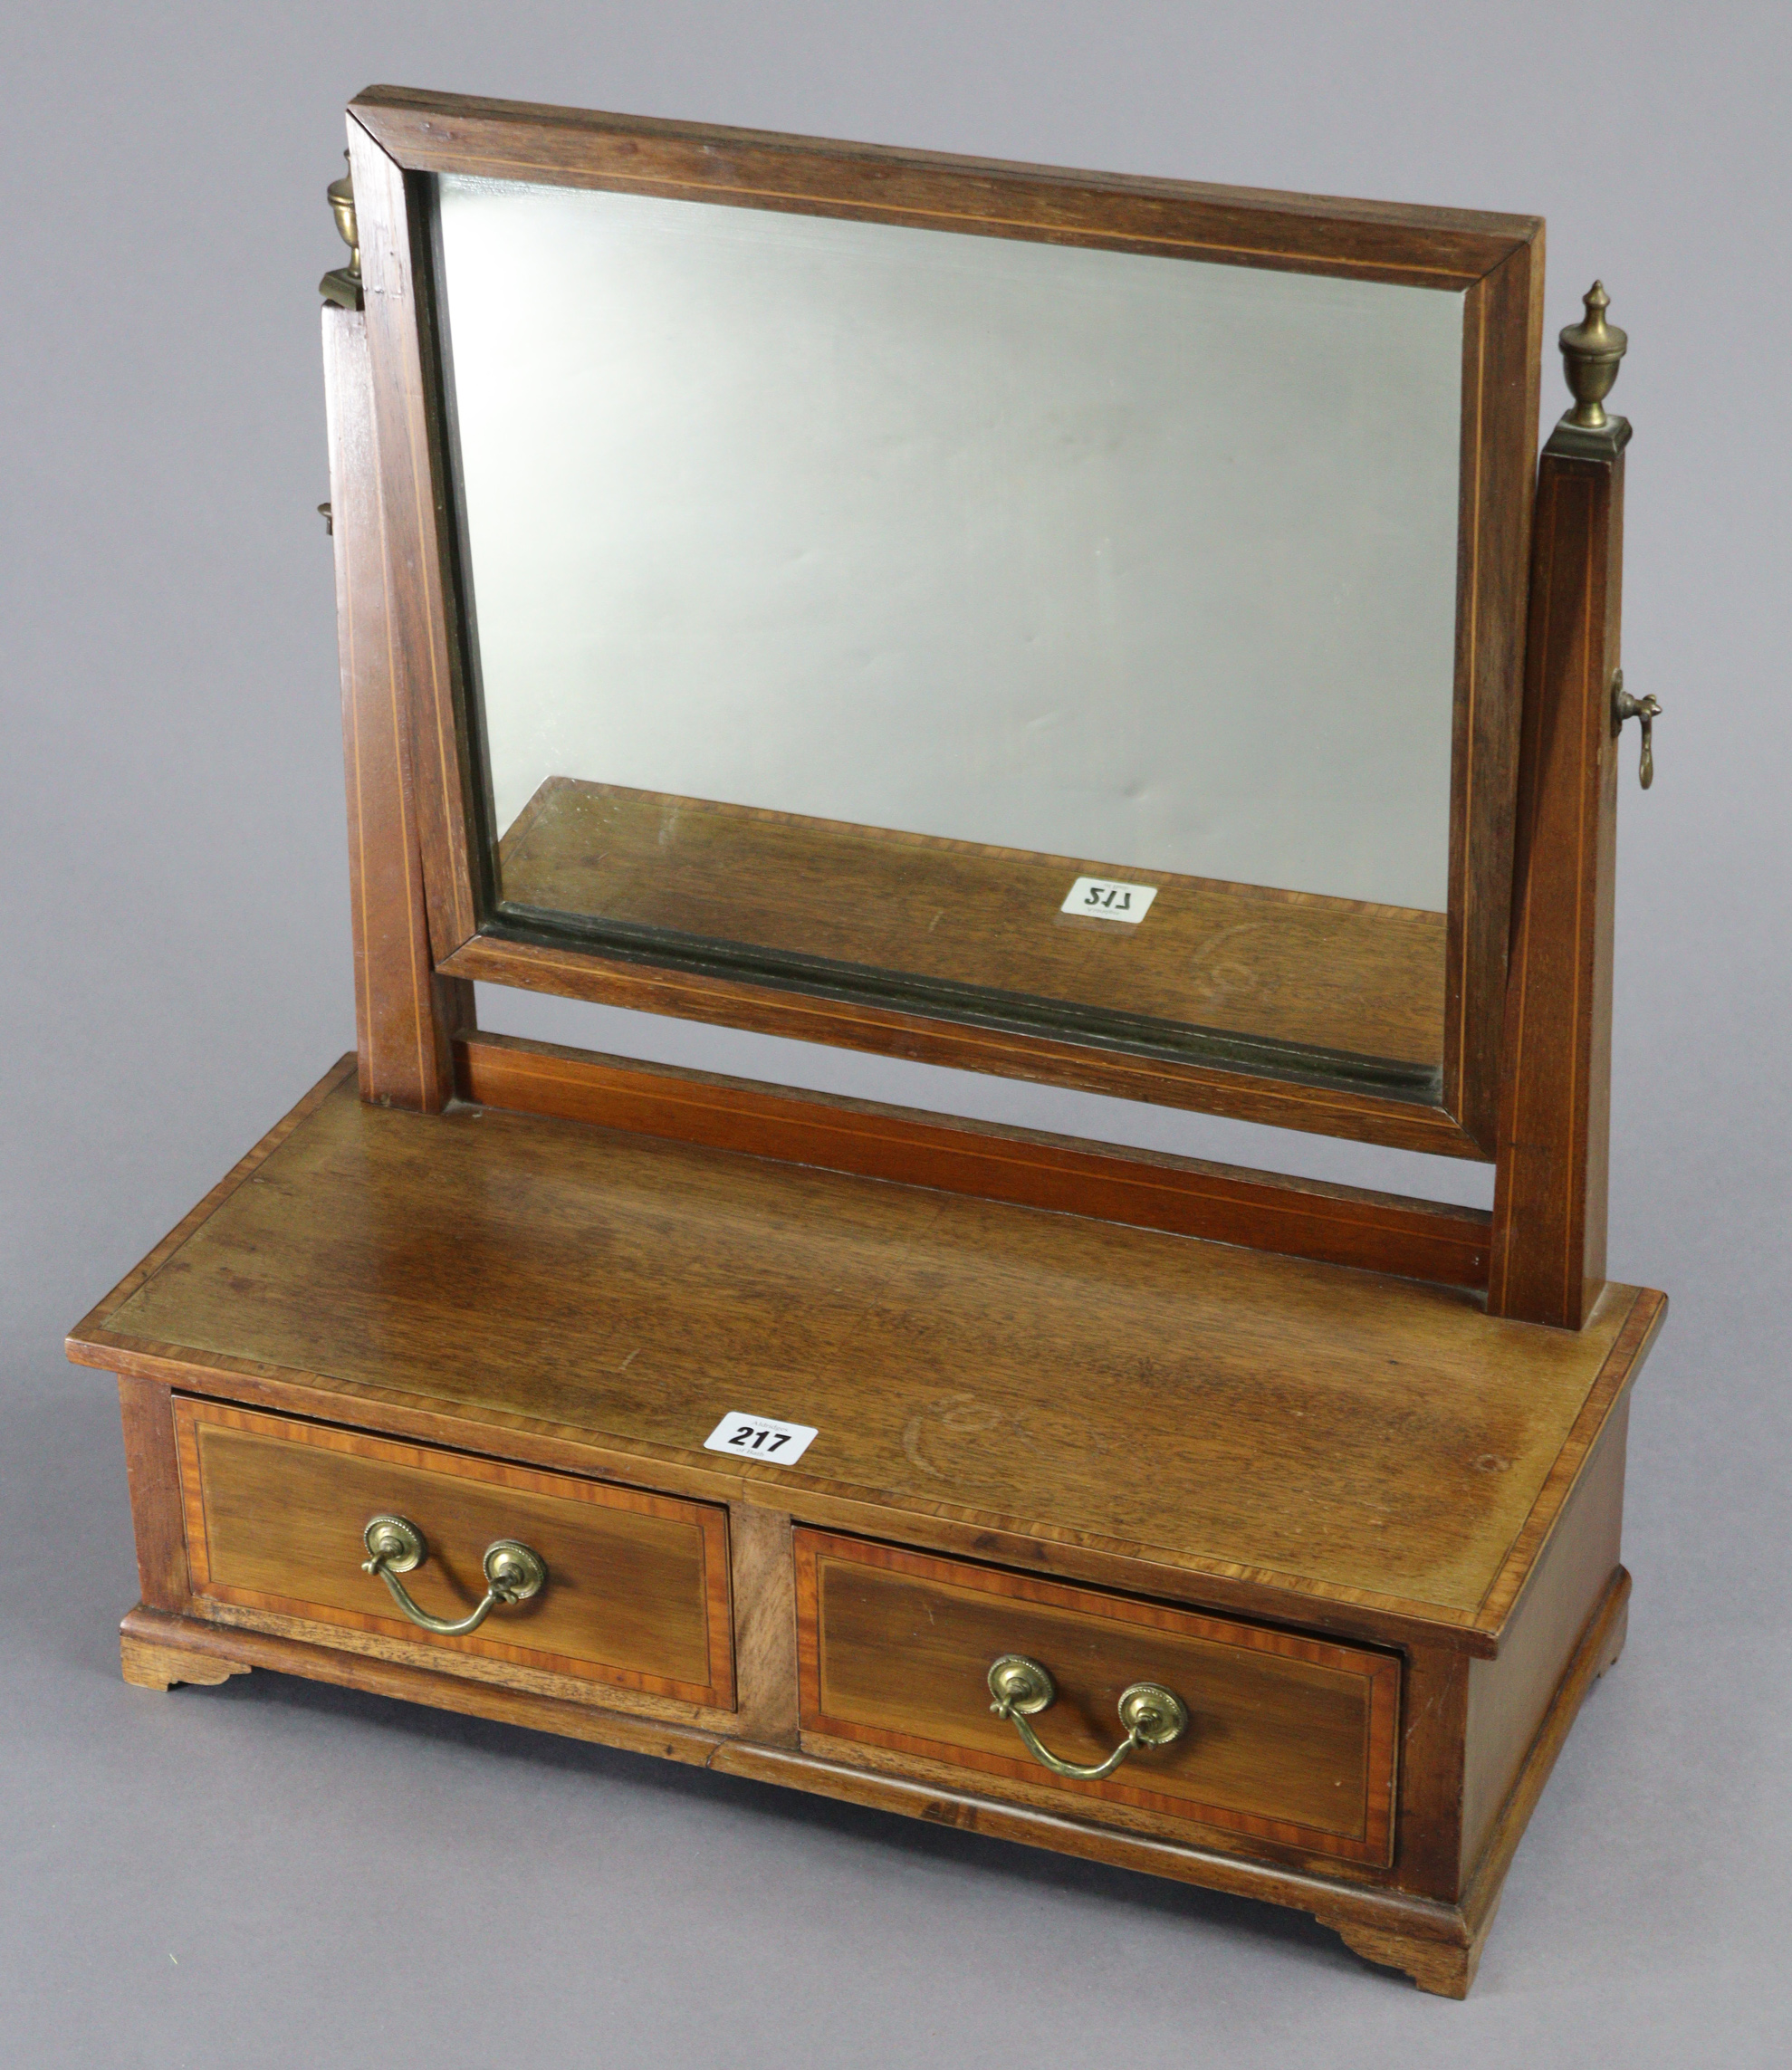 An Edwardian inlaid mahogany rectangular swing toilet glass, fitted two small drawers to the box